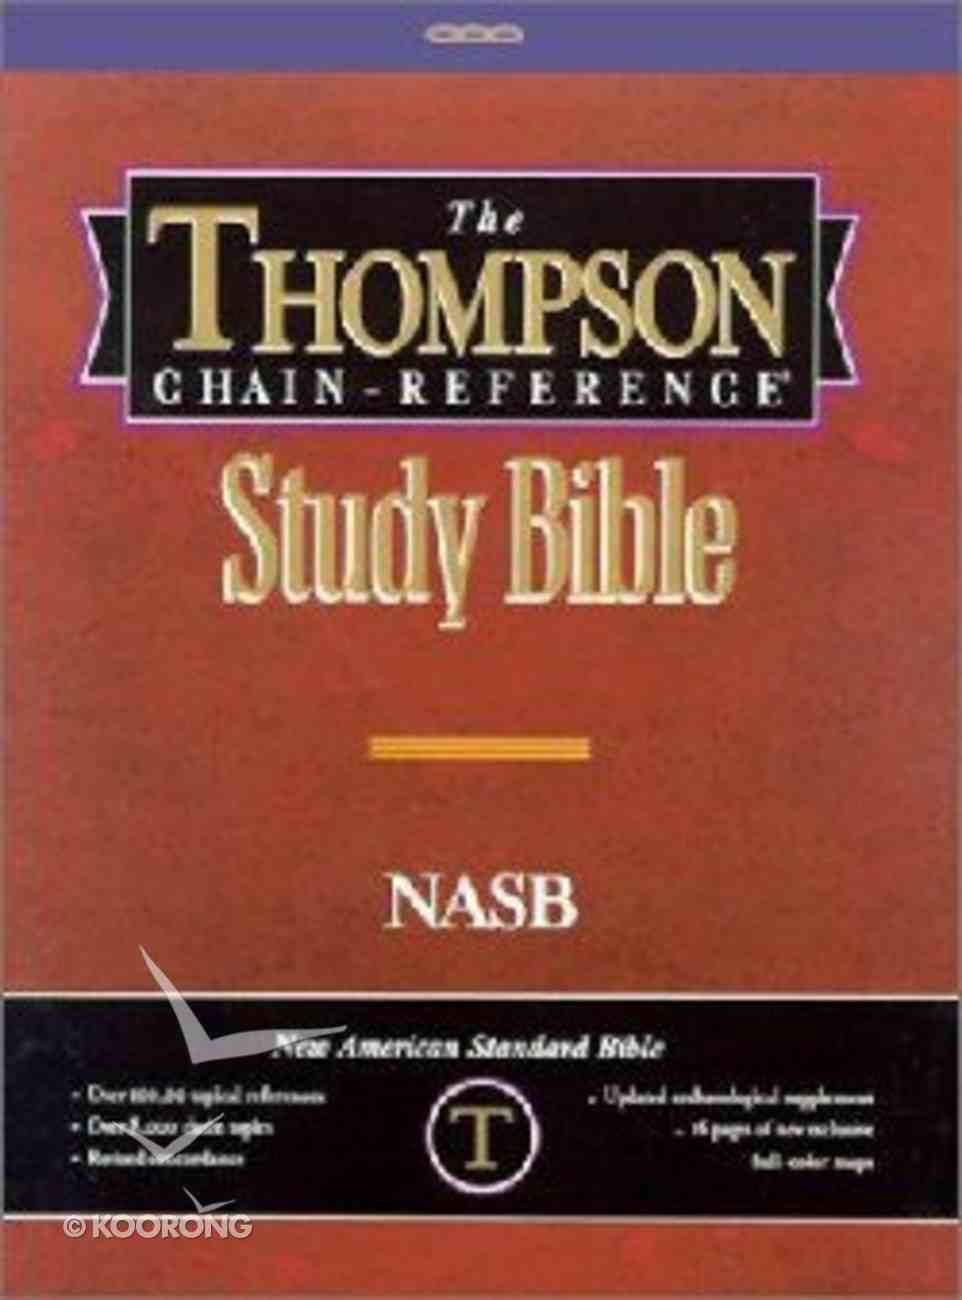 NASB Thompson Chain Reference Black (Red Letter Edition) (1977 Edition) Genuine Leather